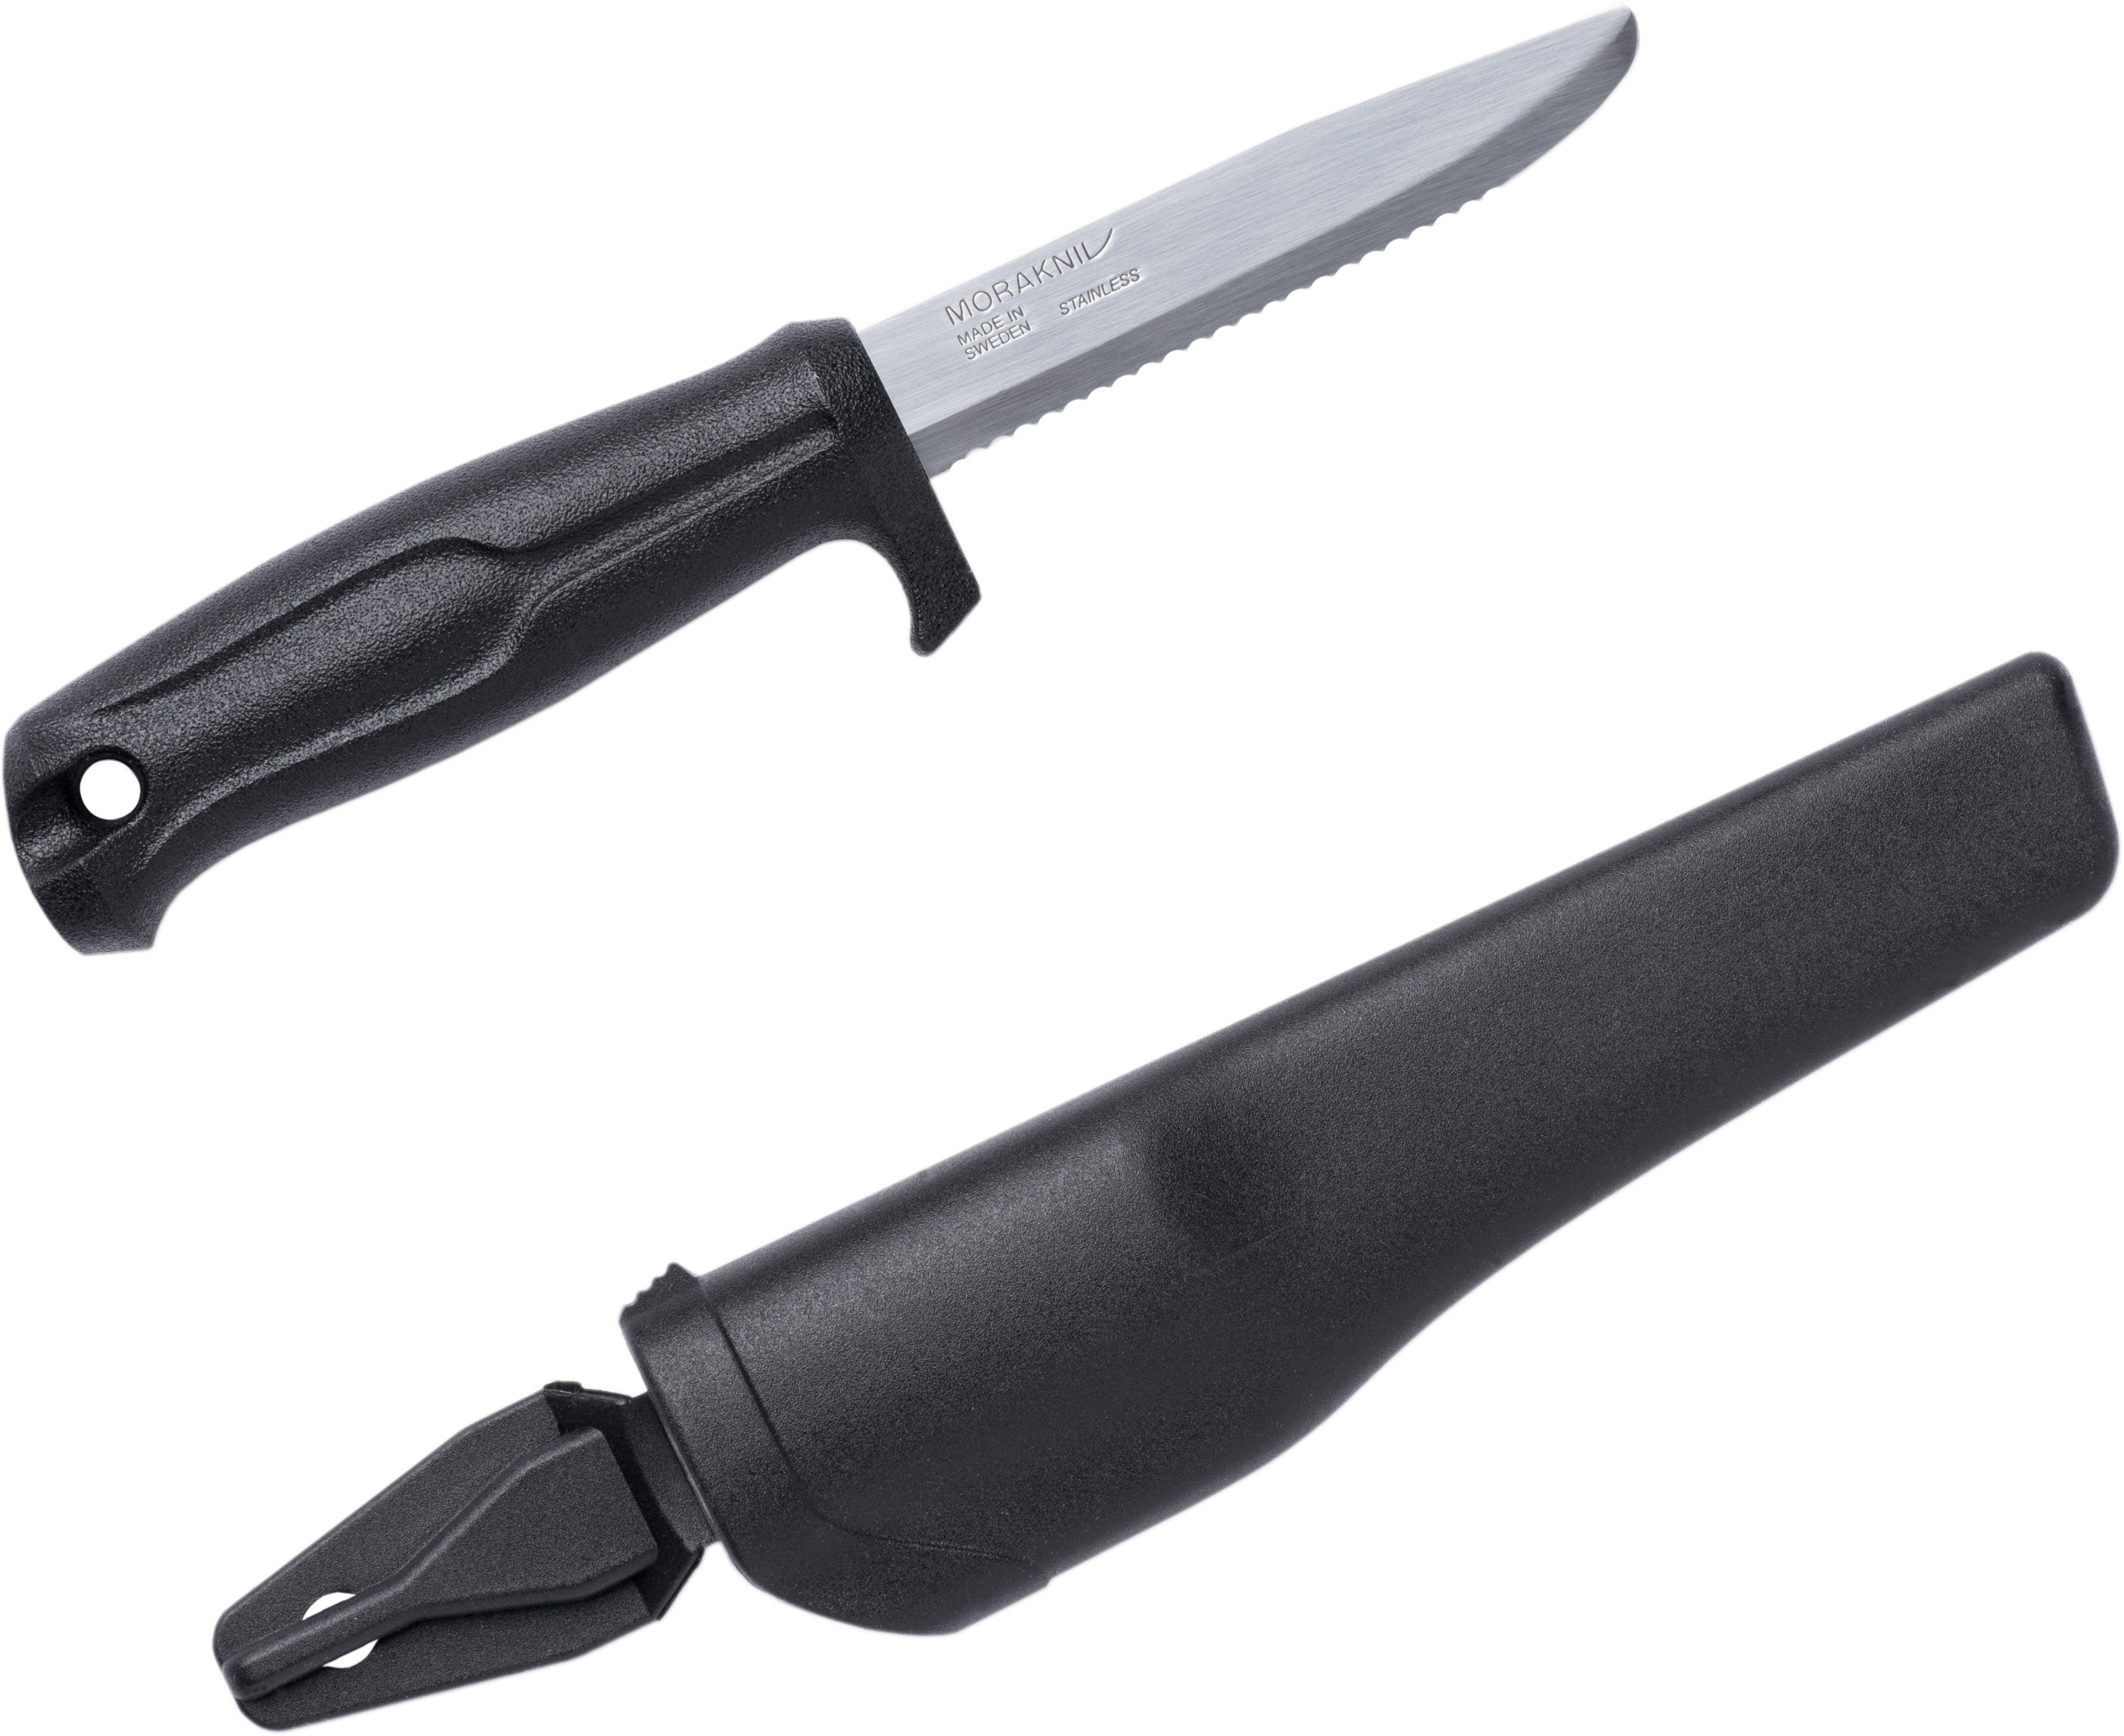 Morakniv Mora of Sweden Marine Rescue 541 Fixed 3.625 inch Stainless Steel Combo Blade, Black Polymer Handle, Black Polymer Sheath